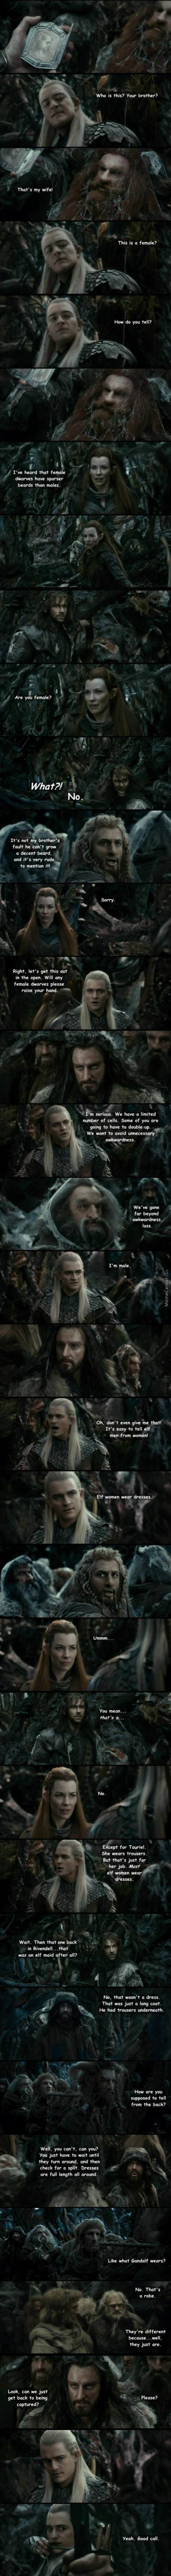 Elves And Dwarves